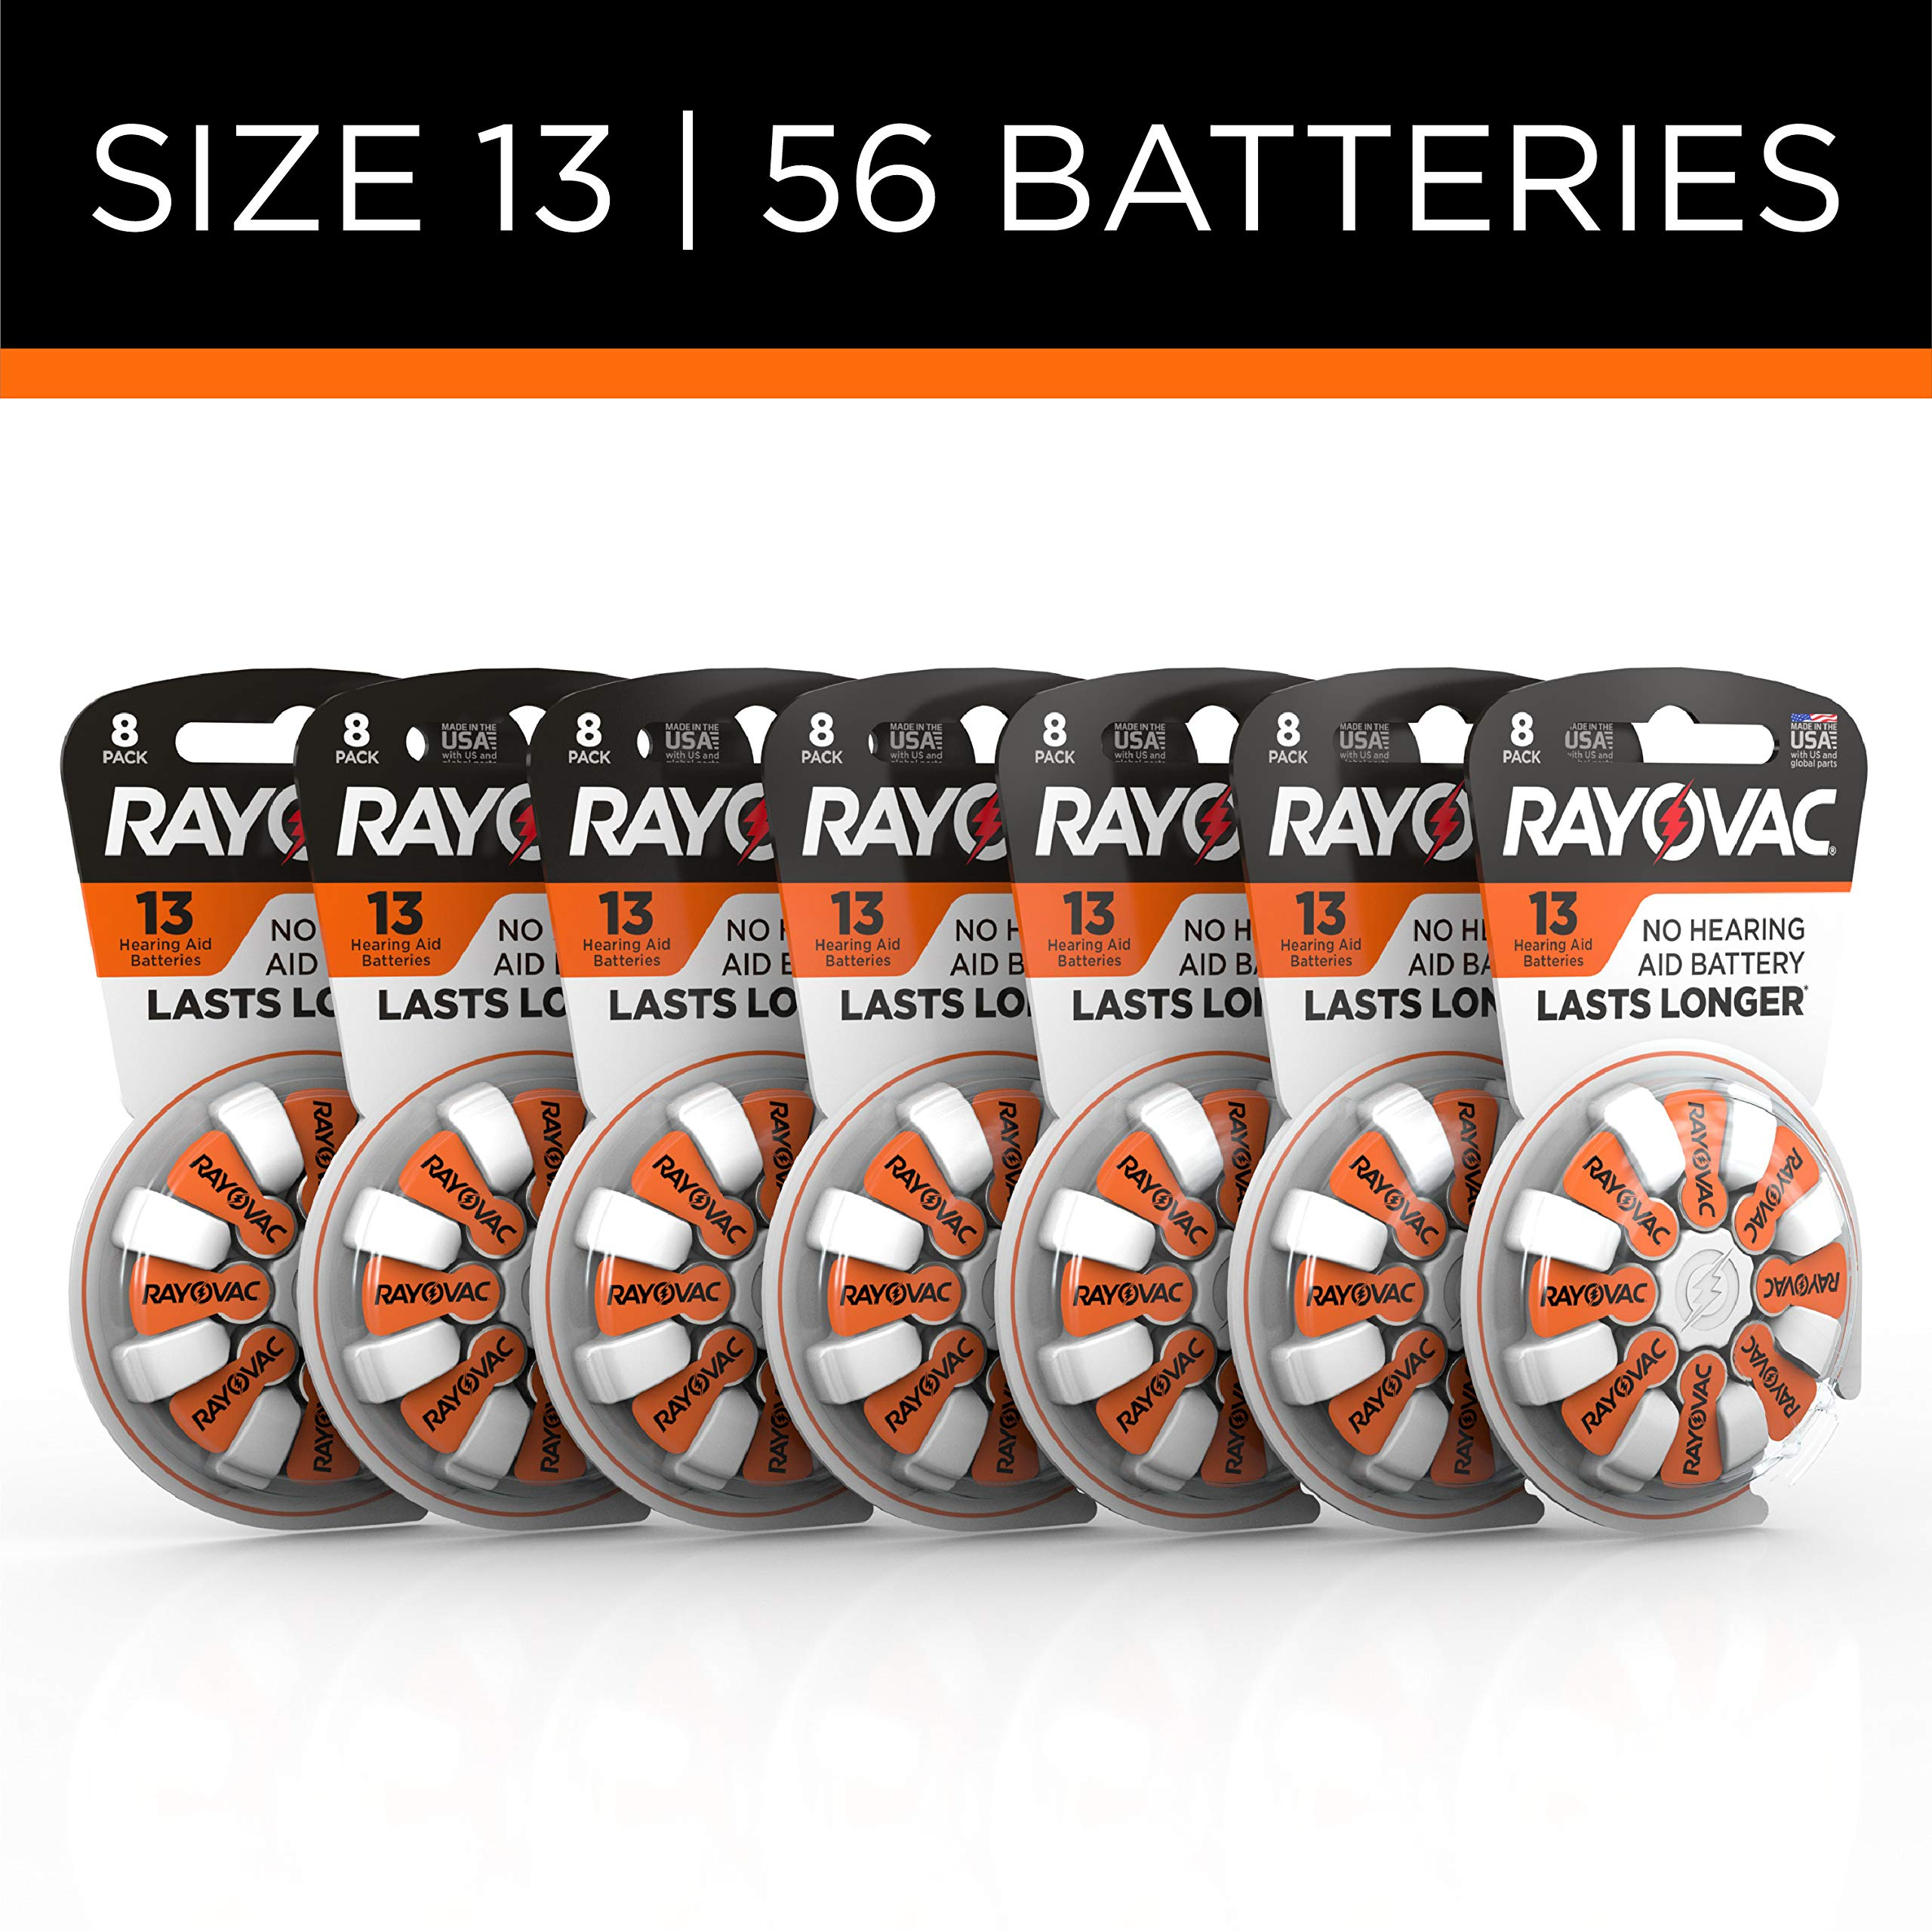 Rayovac Hearing Aid Batteries Size 13 for Advanced Hearing Aid Devices,56 Count by Rayovac